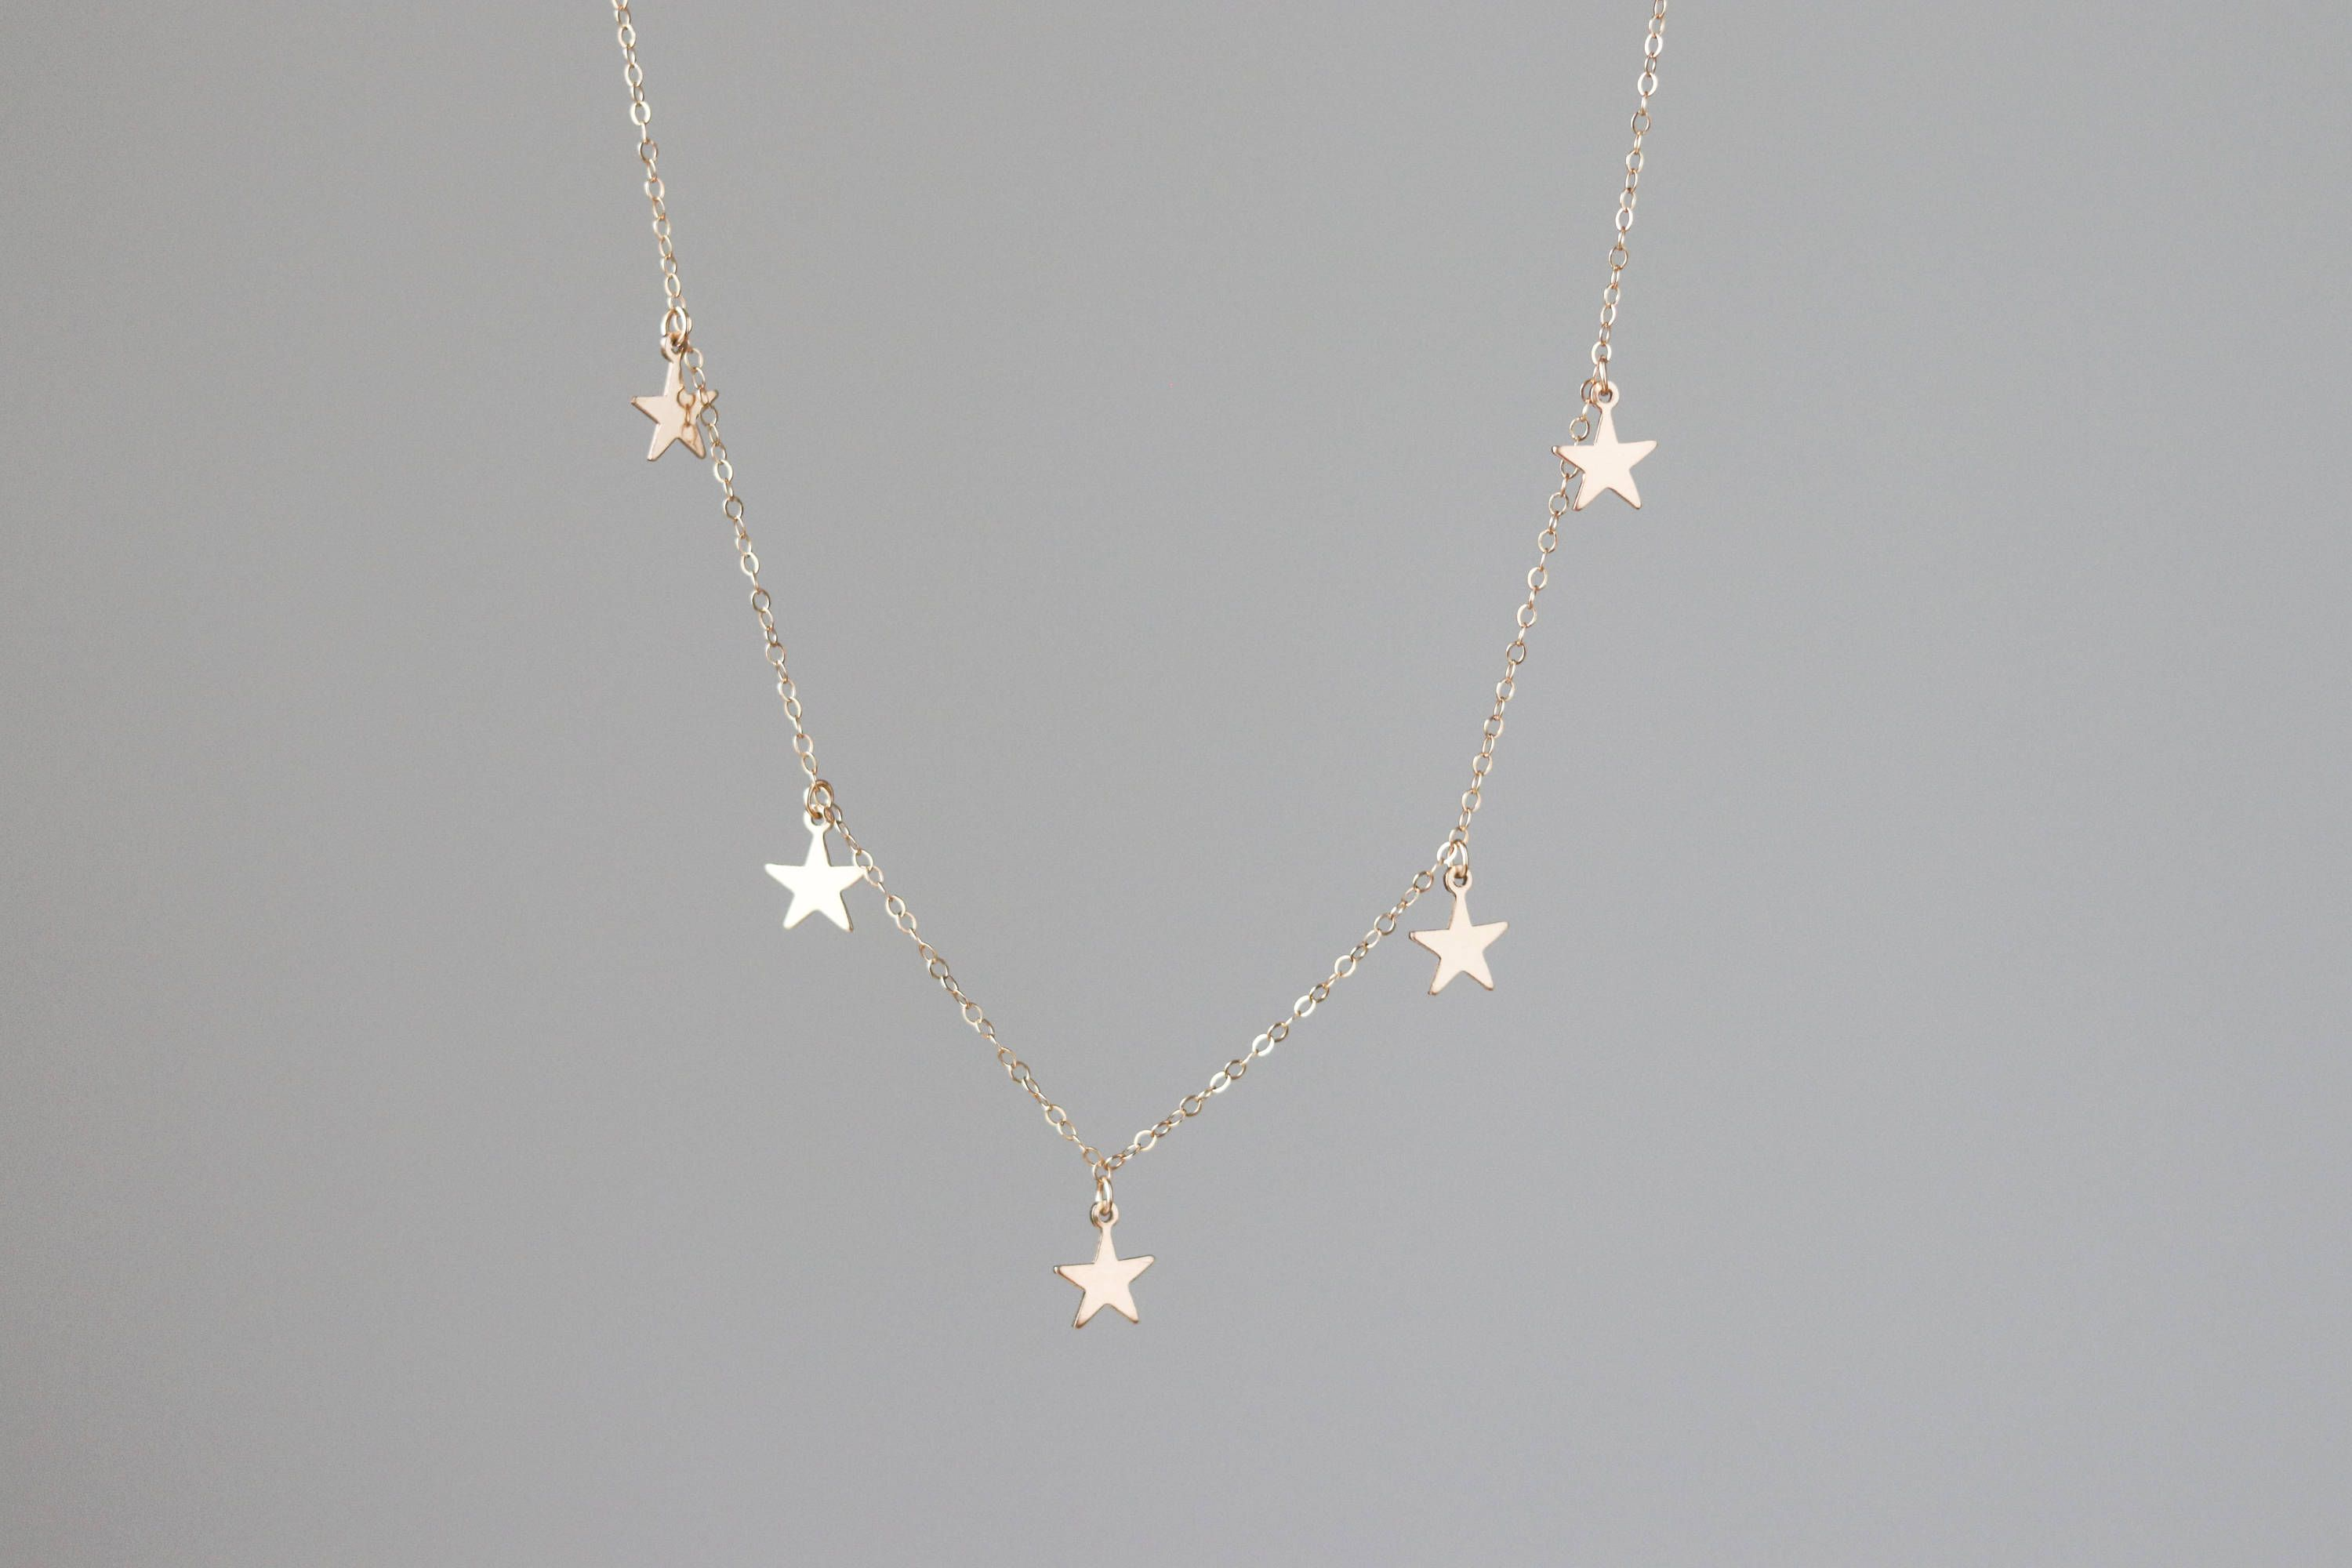 silver star handmade stamped gold jewelry necklace shining necklaces tiny eden copy or shop hand reija